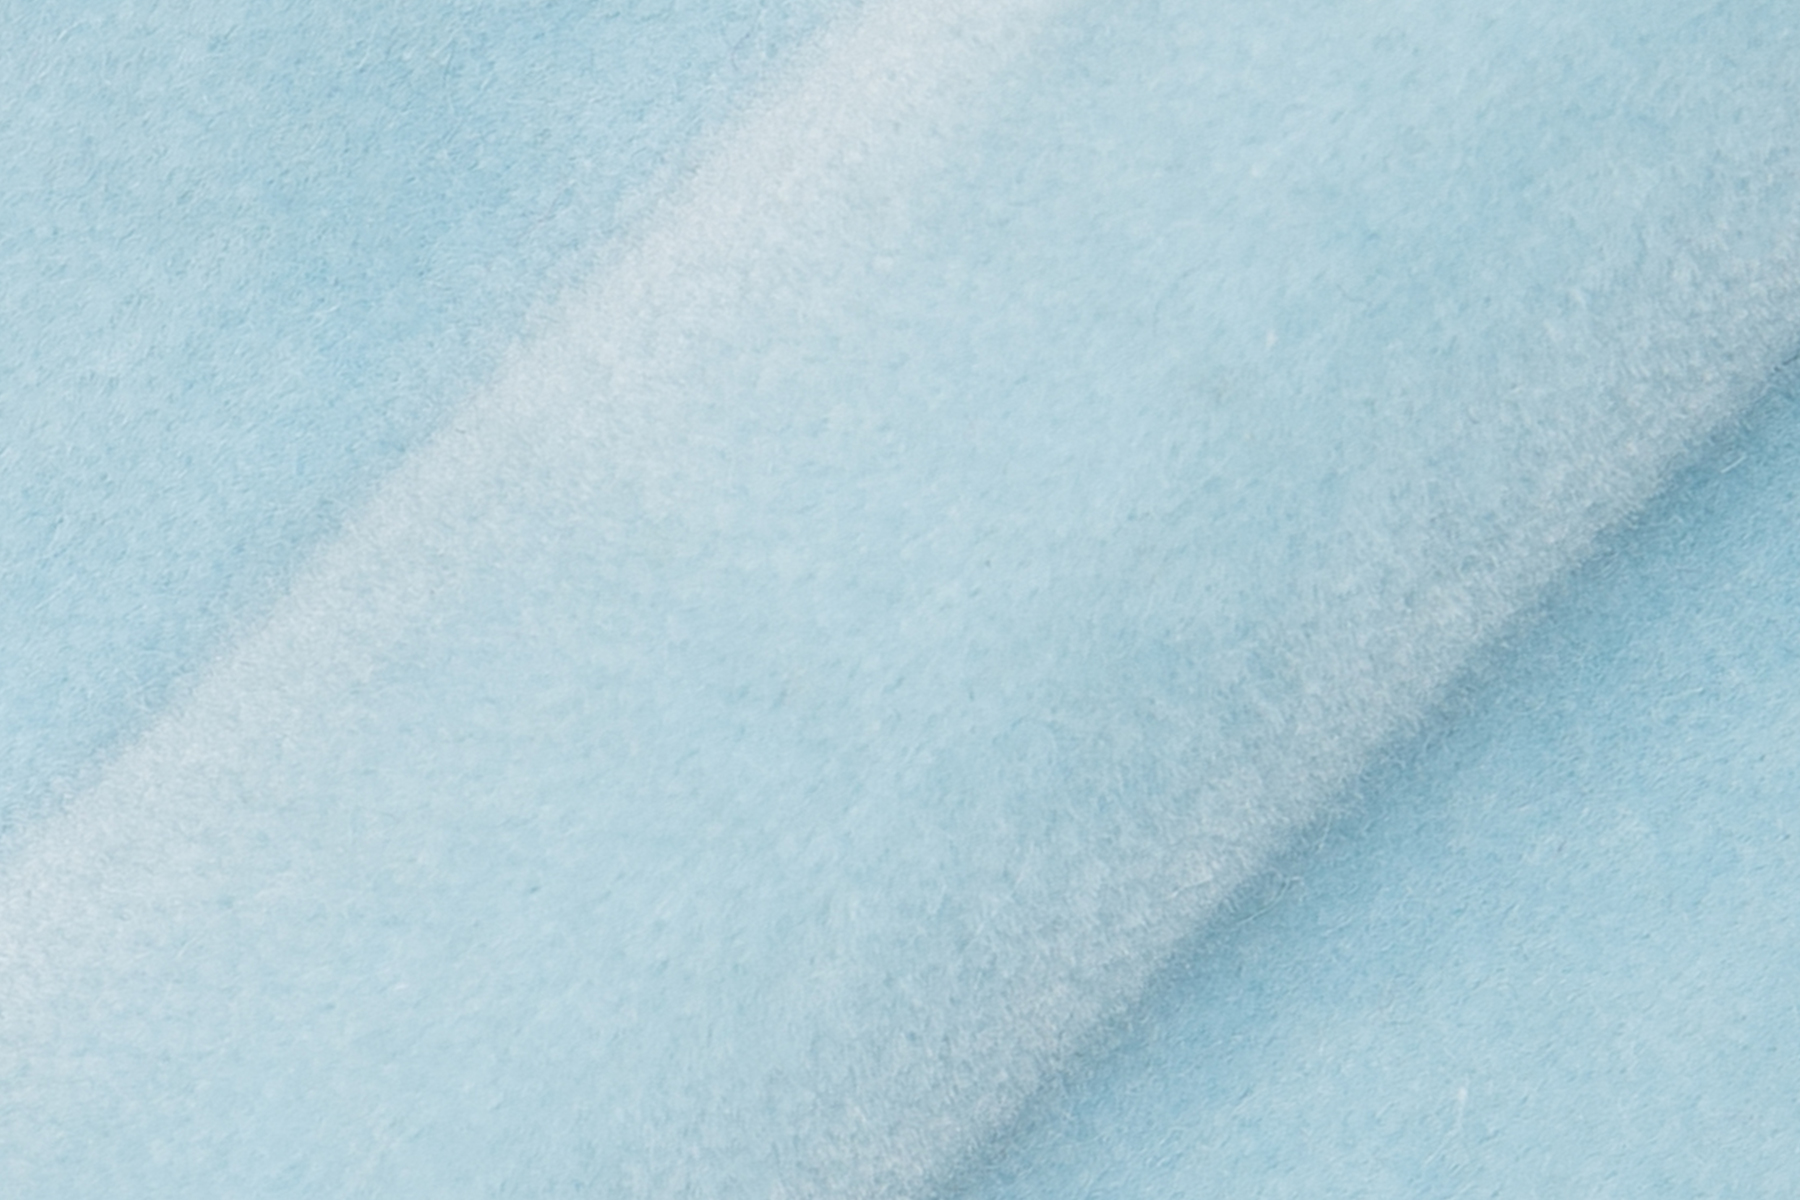 LUX VELVET 6031 BABY BLUE Fabric by KOKET